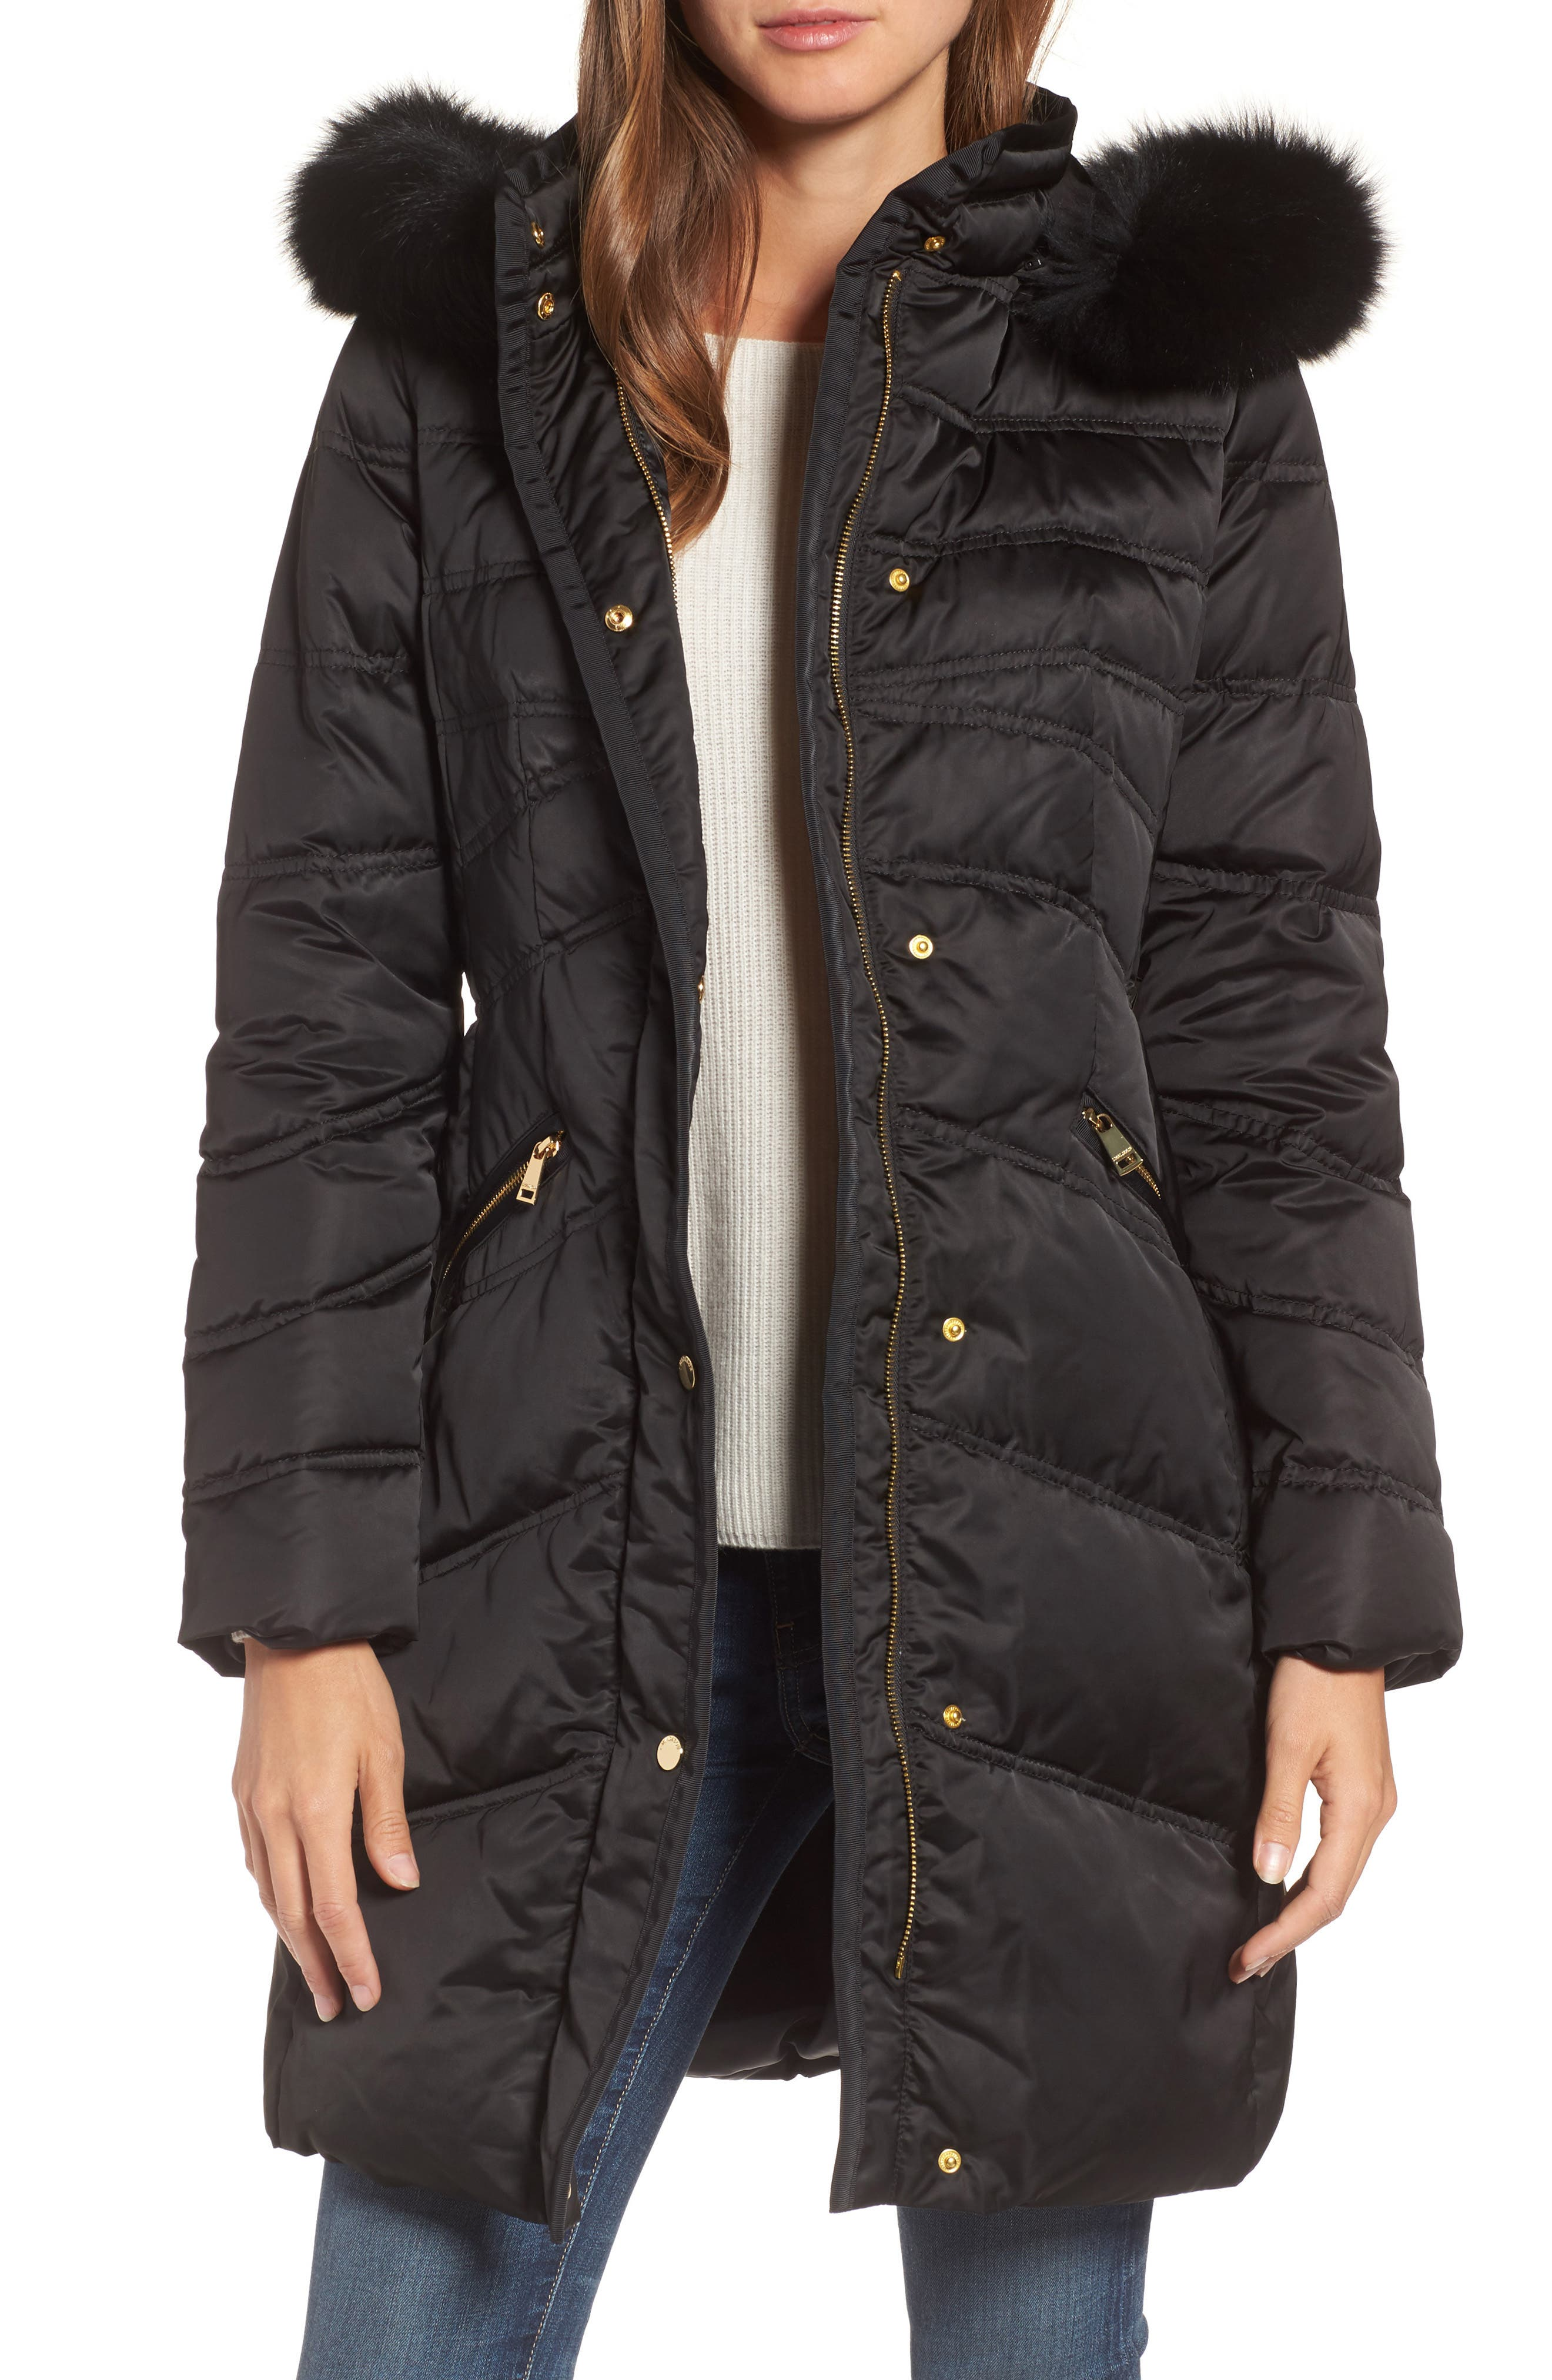 1 MADISON Insulated Parka with Genuine Fox Fur Trim, Main, color, 001